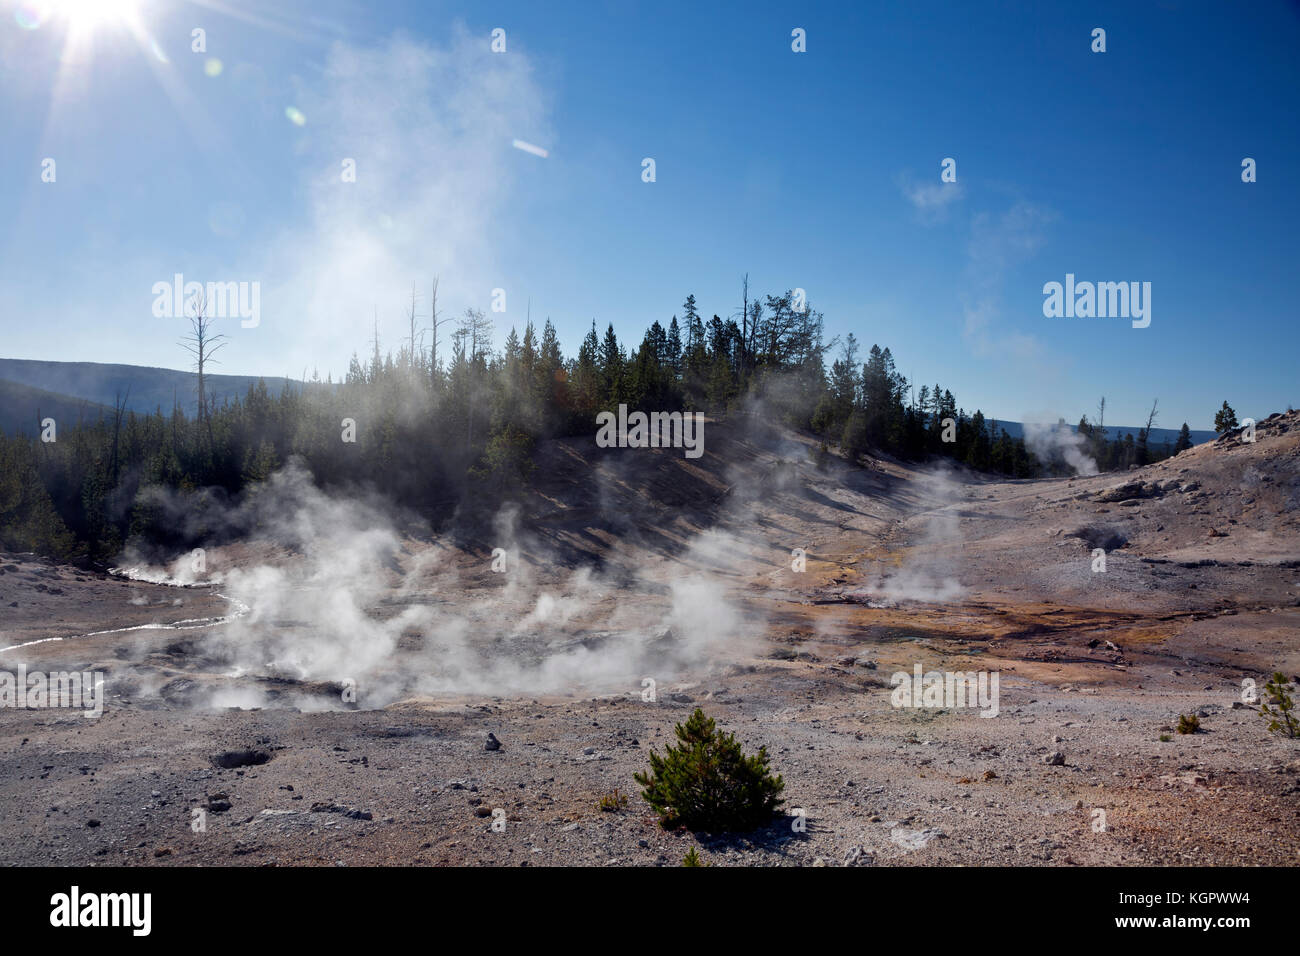 WY02586-00...WYOMING - Steam from numerous fumaroles in Monument Geyser Basin area of Yellowstone National Park. - Stock Image